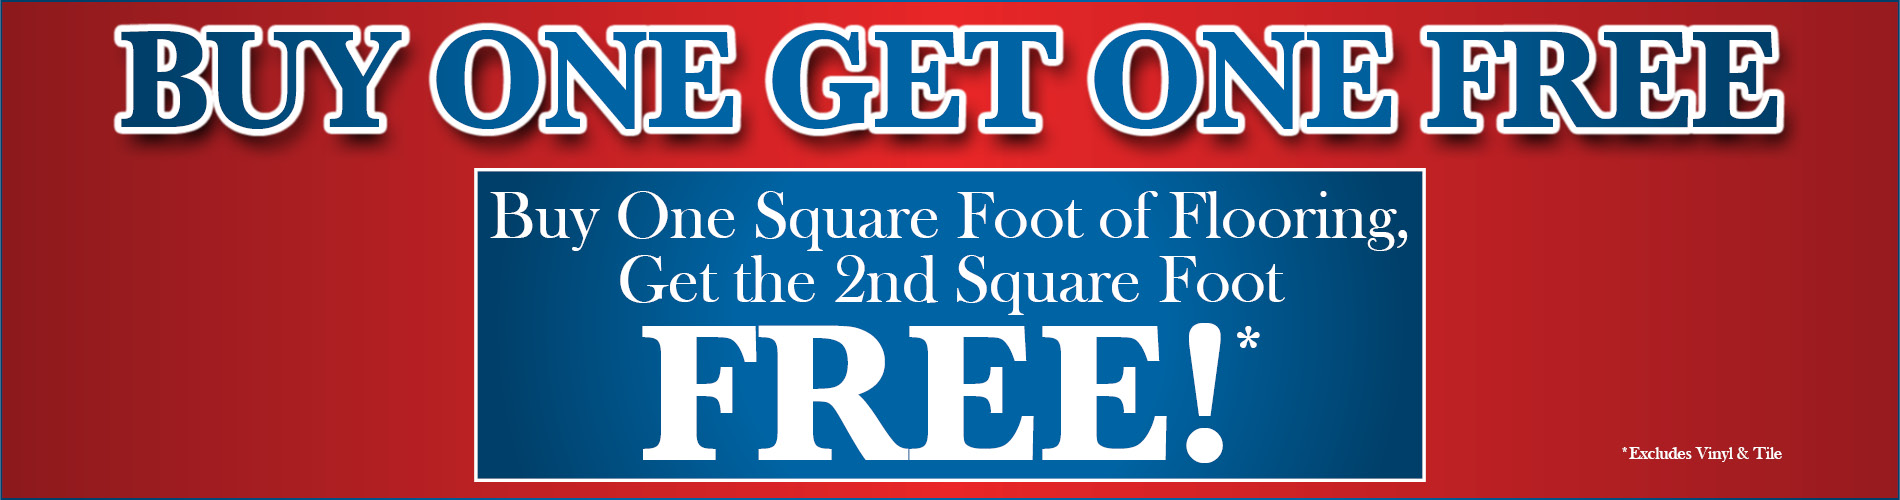 Buy one get one free sale!  Buy one sq.ft. of flooring and get the second sq.ft. FREE!